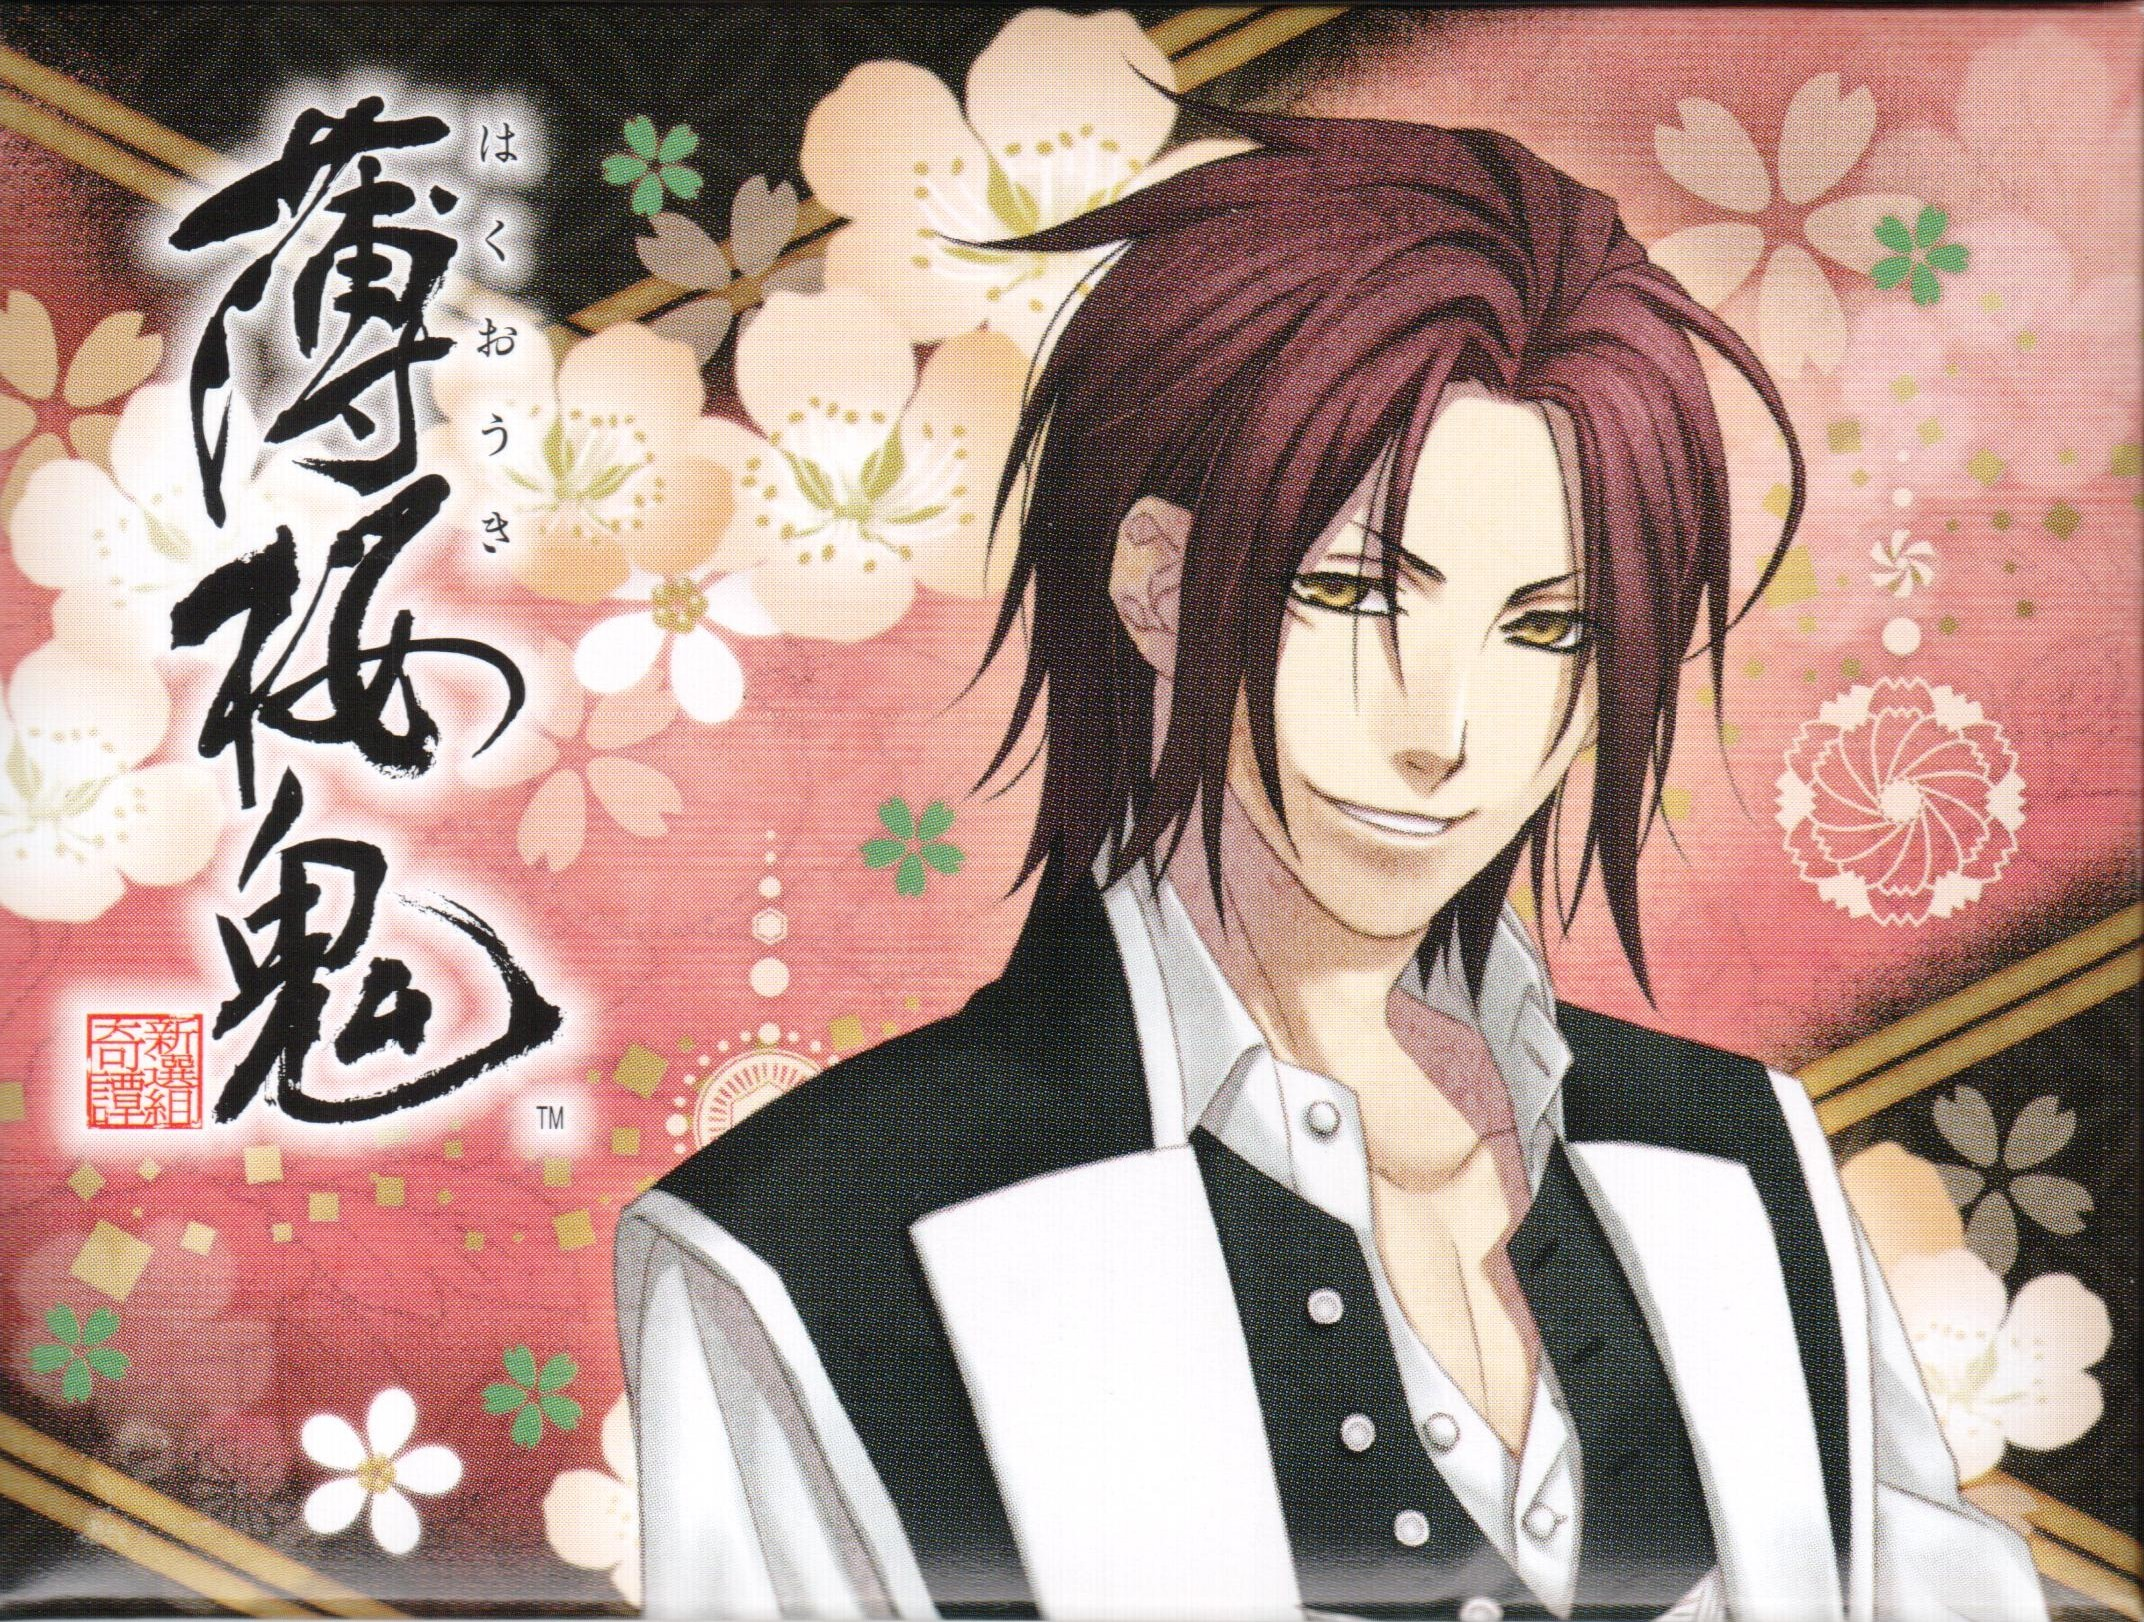 Res: 2144x1622, hakuouki hekketsu-roku images Sano-san HD wallpaper and background photos